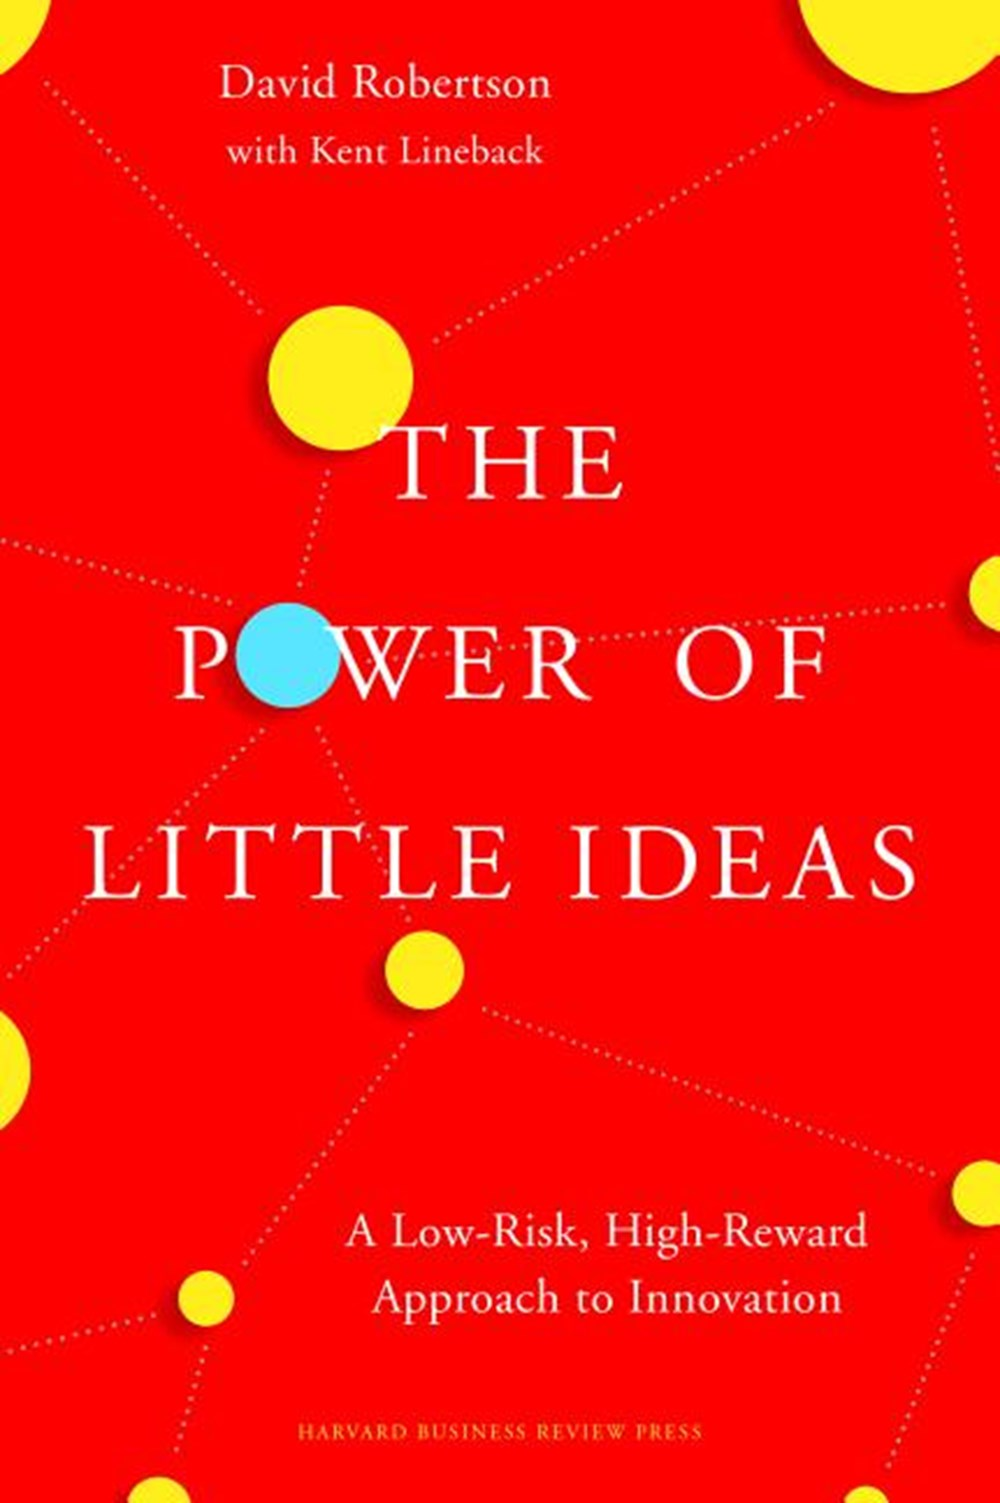 Power of Little Ideas A Low-Risk, High-Reward Approach to Innovation